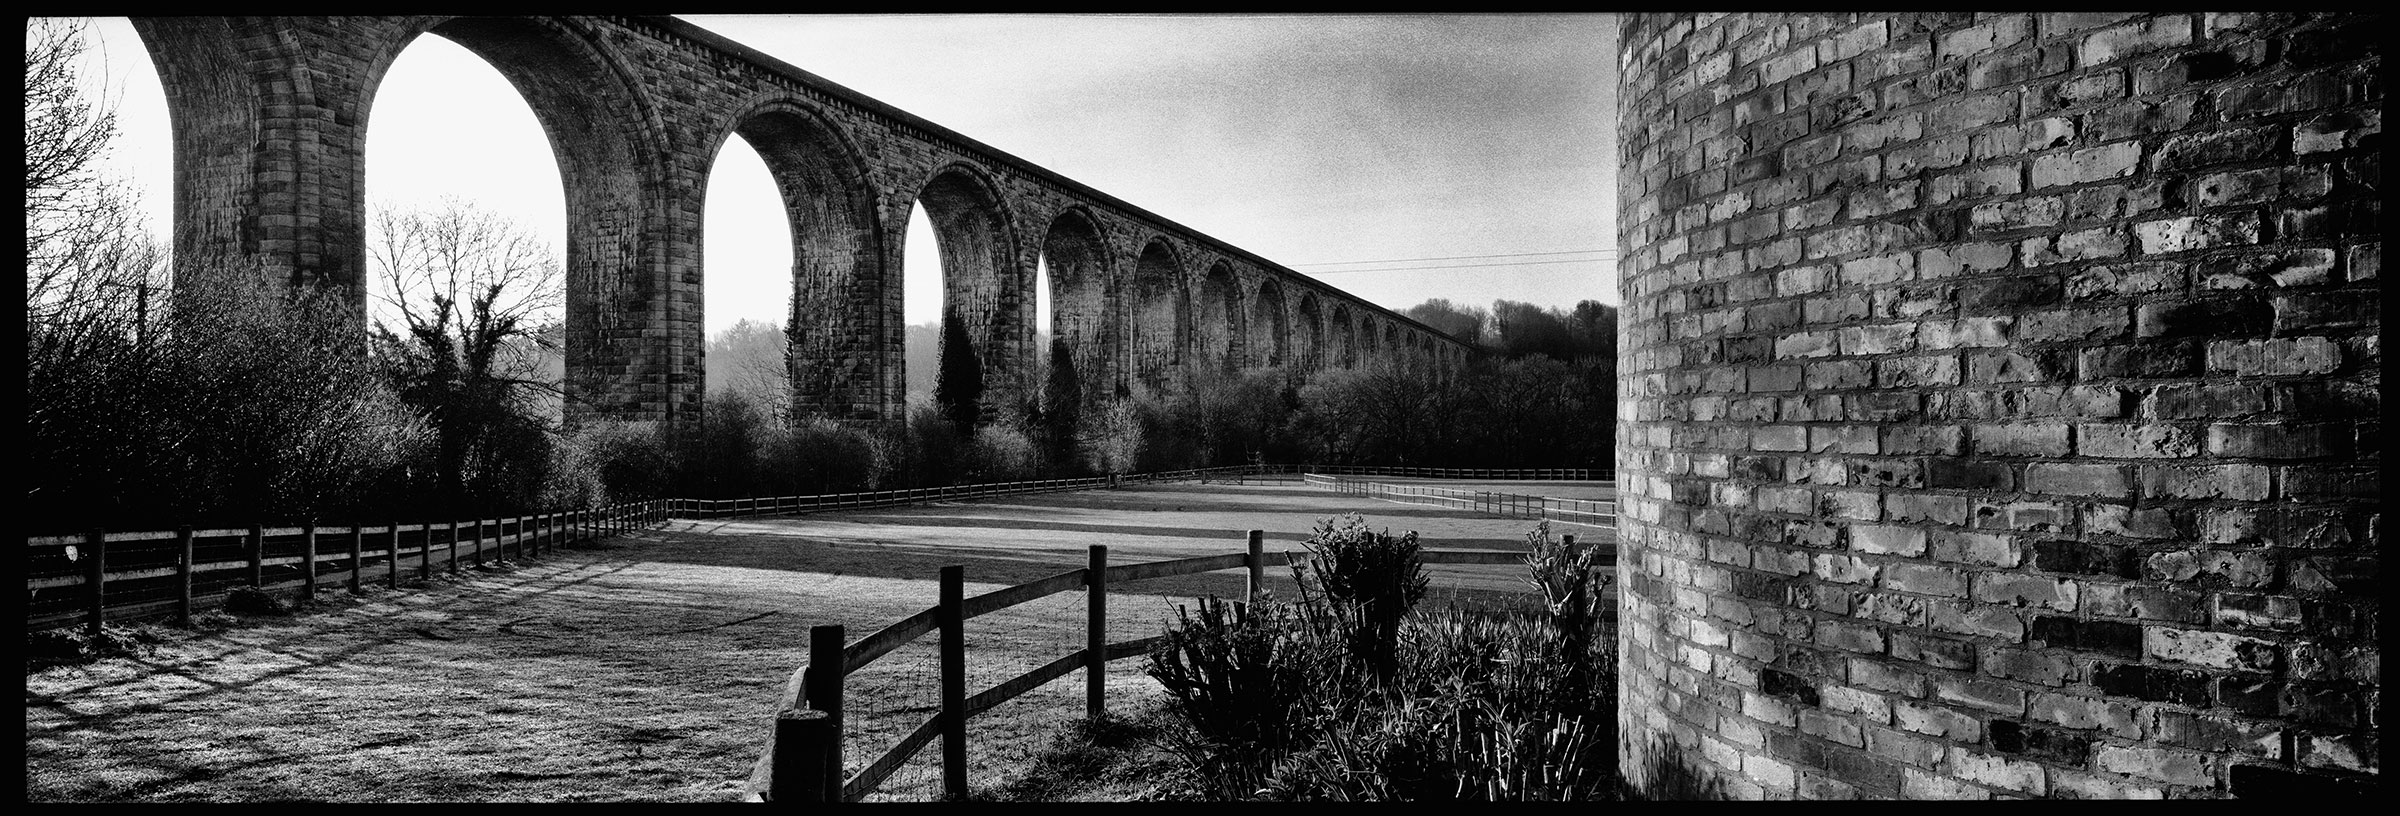 Early morning panoramic shot at Cefn Viaduct.